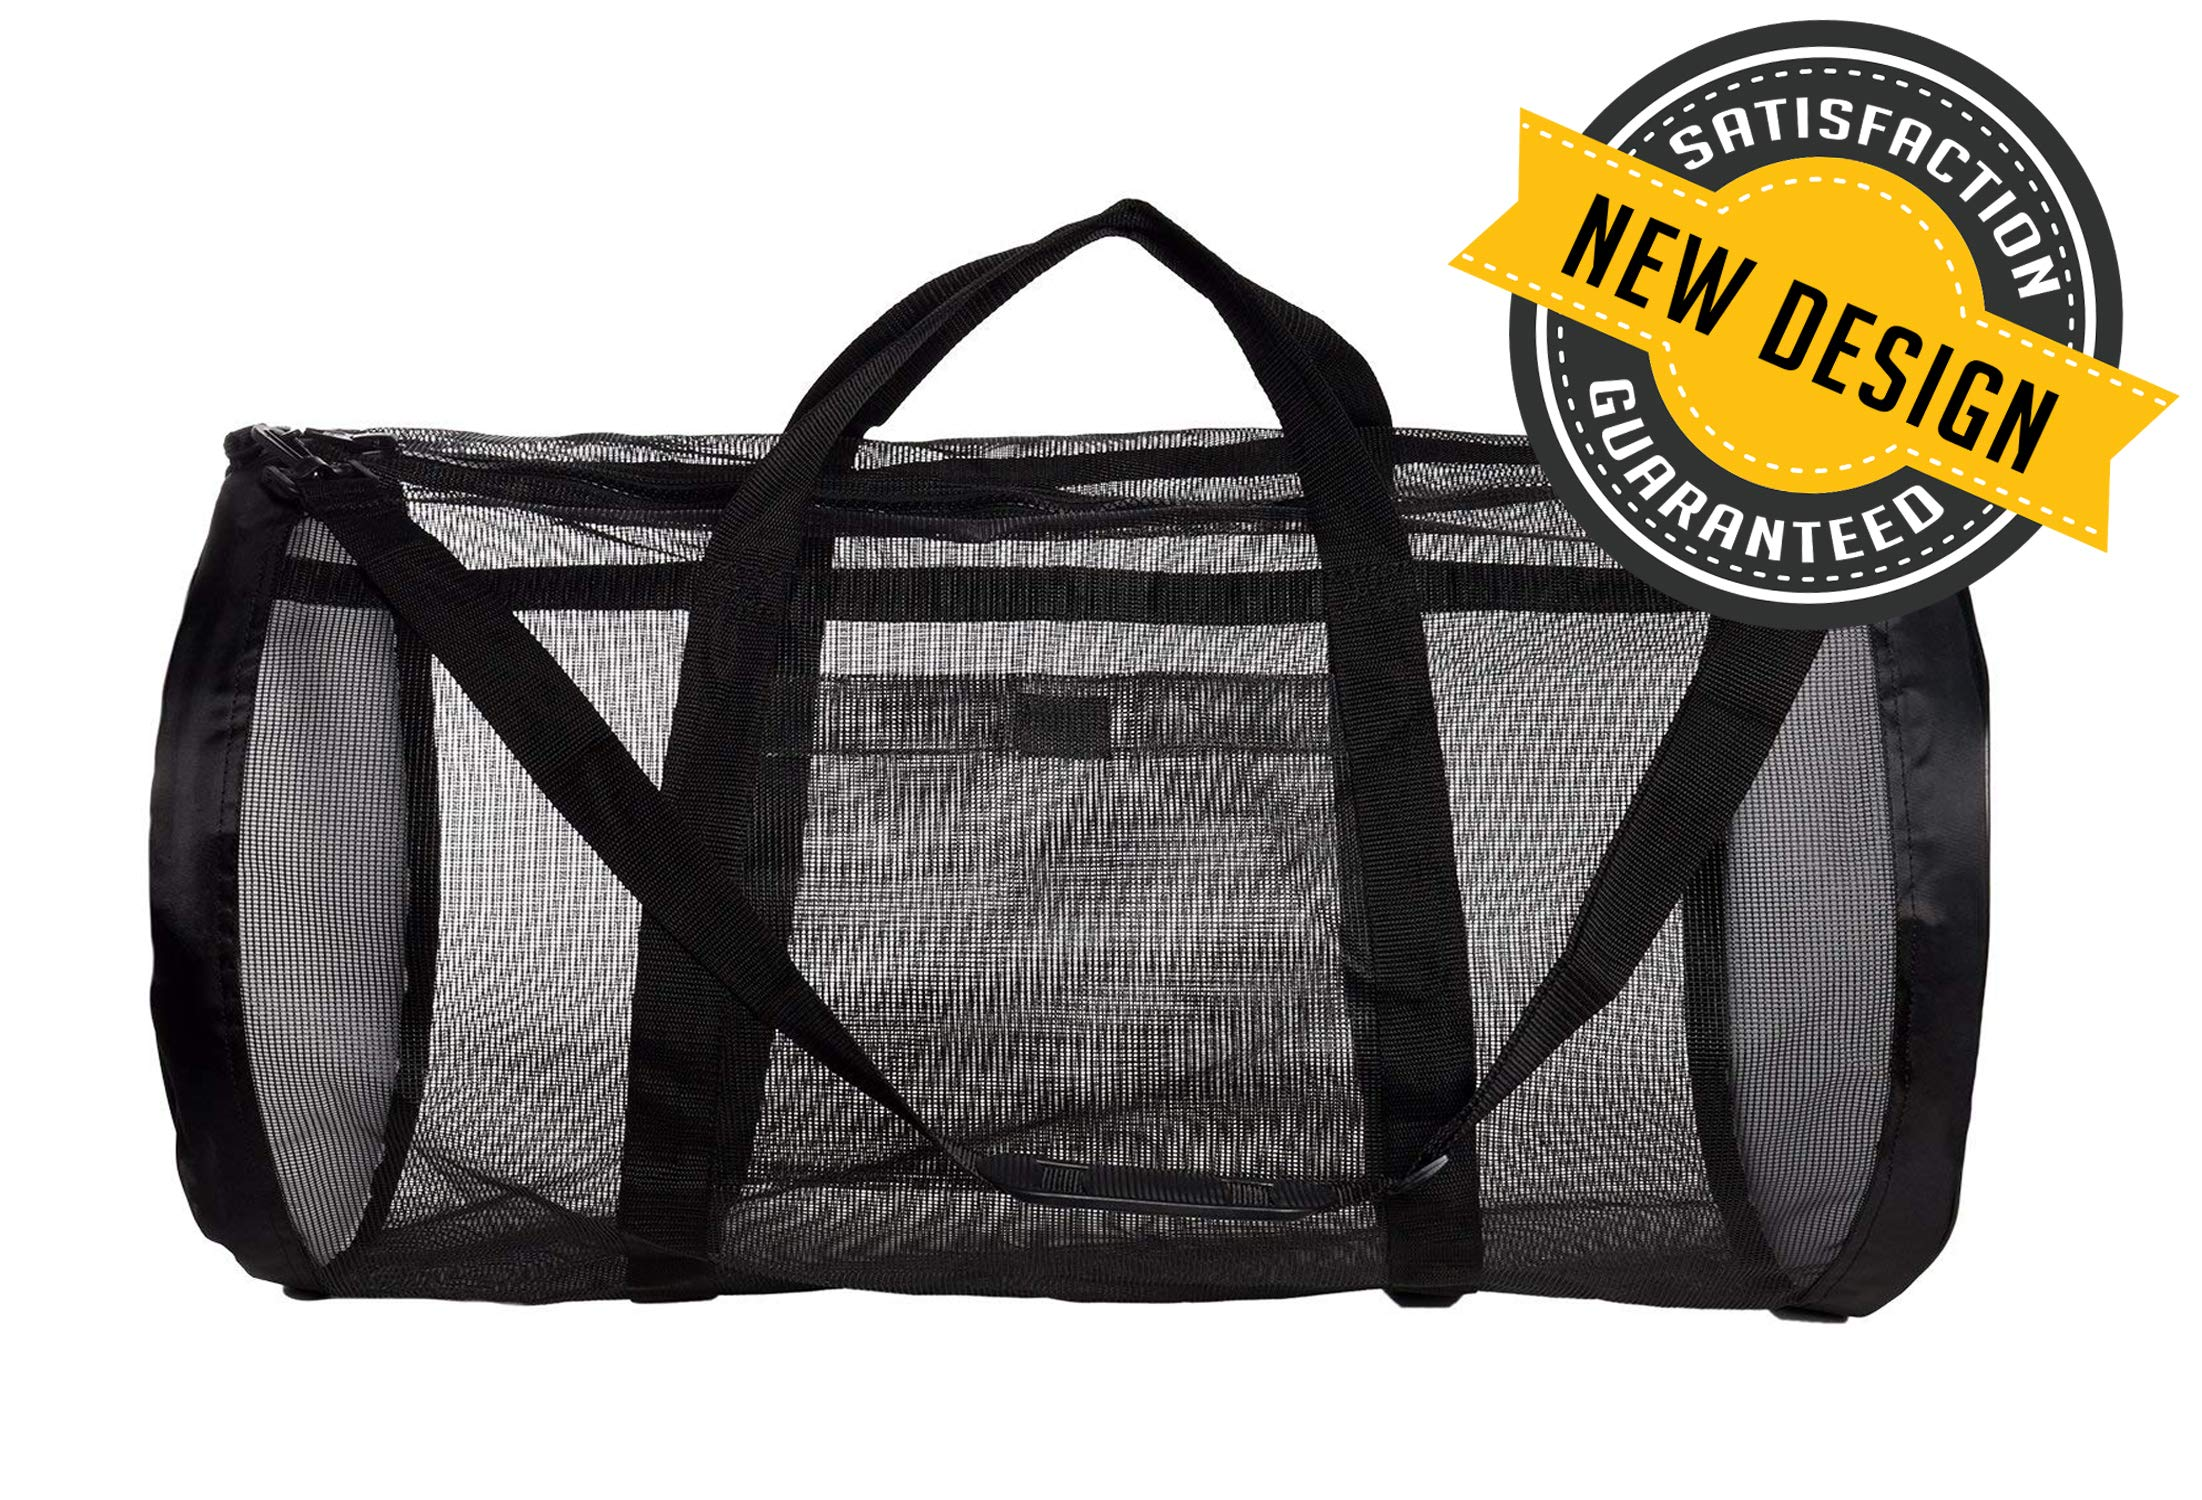 Dive Bag Mesh Duffle Bag - Scuba Bag for Diving Equipment - Extra Large Scuba Diving Gear and Snorkel Bag Mesh Duffel Bag - Ideal Dive Gear Bag and Fin Bag for Water Sports by RIMSports